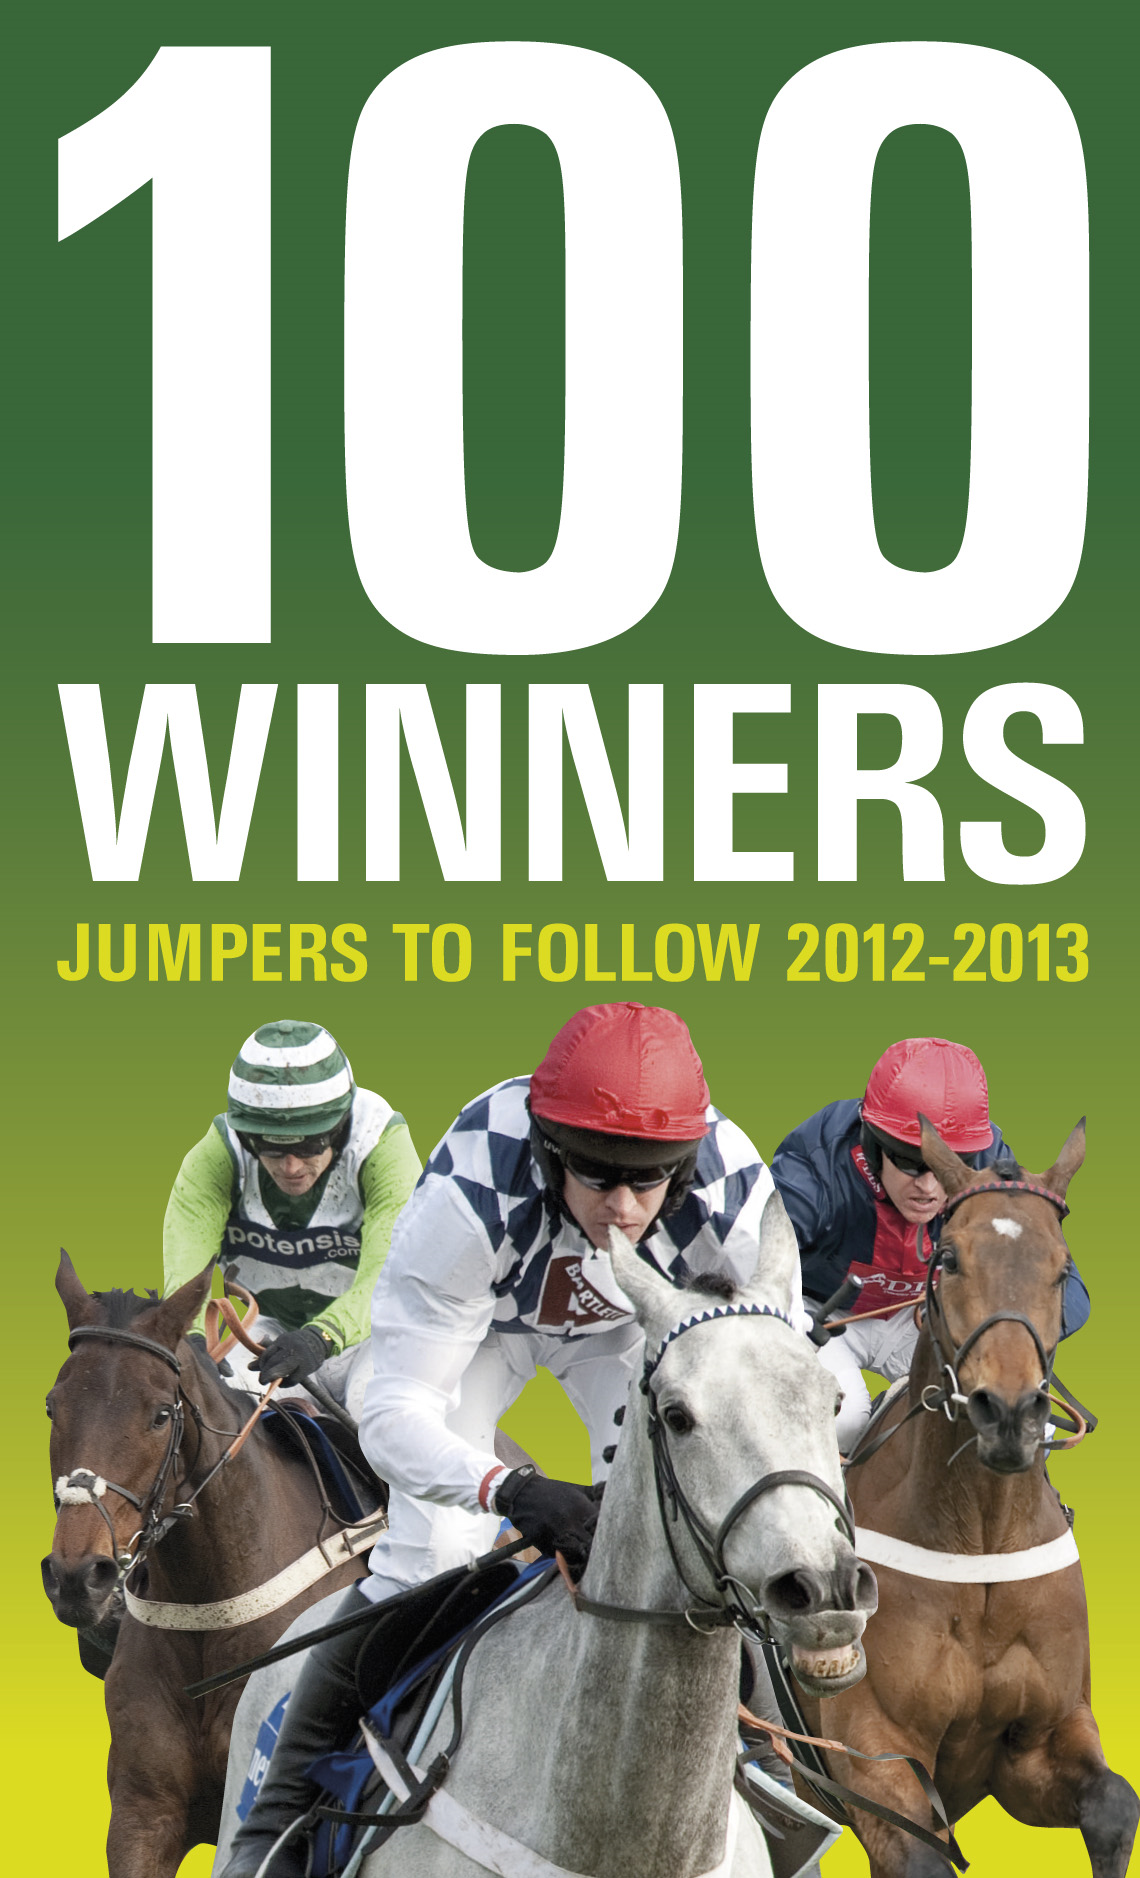 100 Winners: Jumpers to Follow 2012-2013